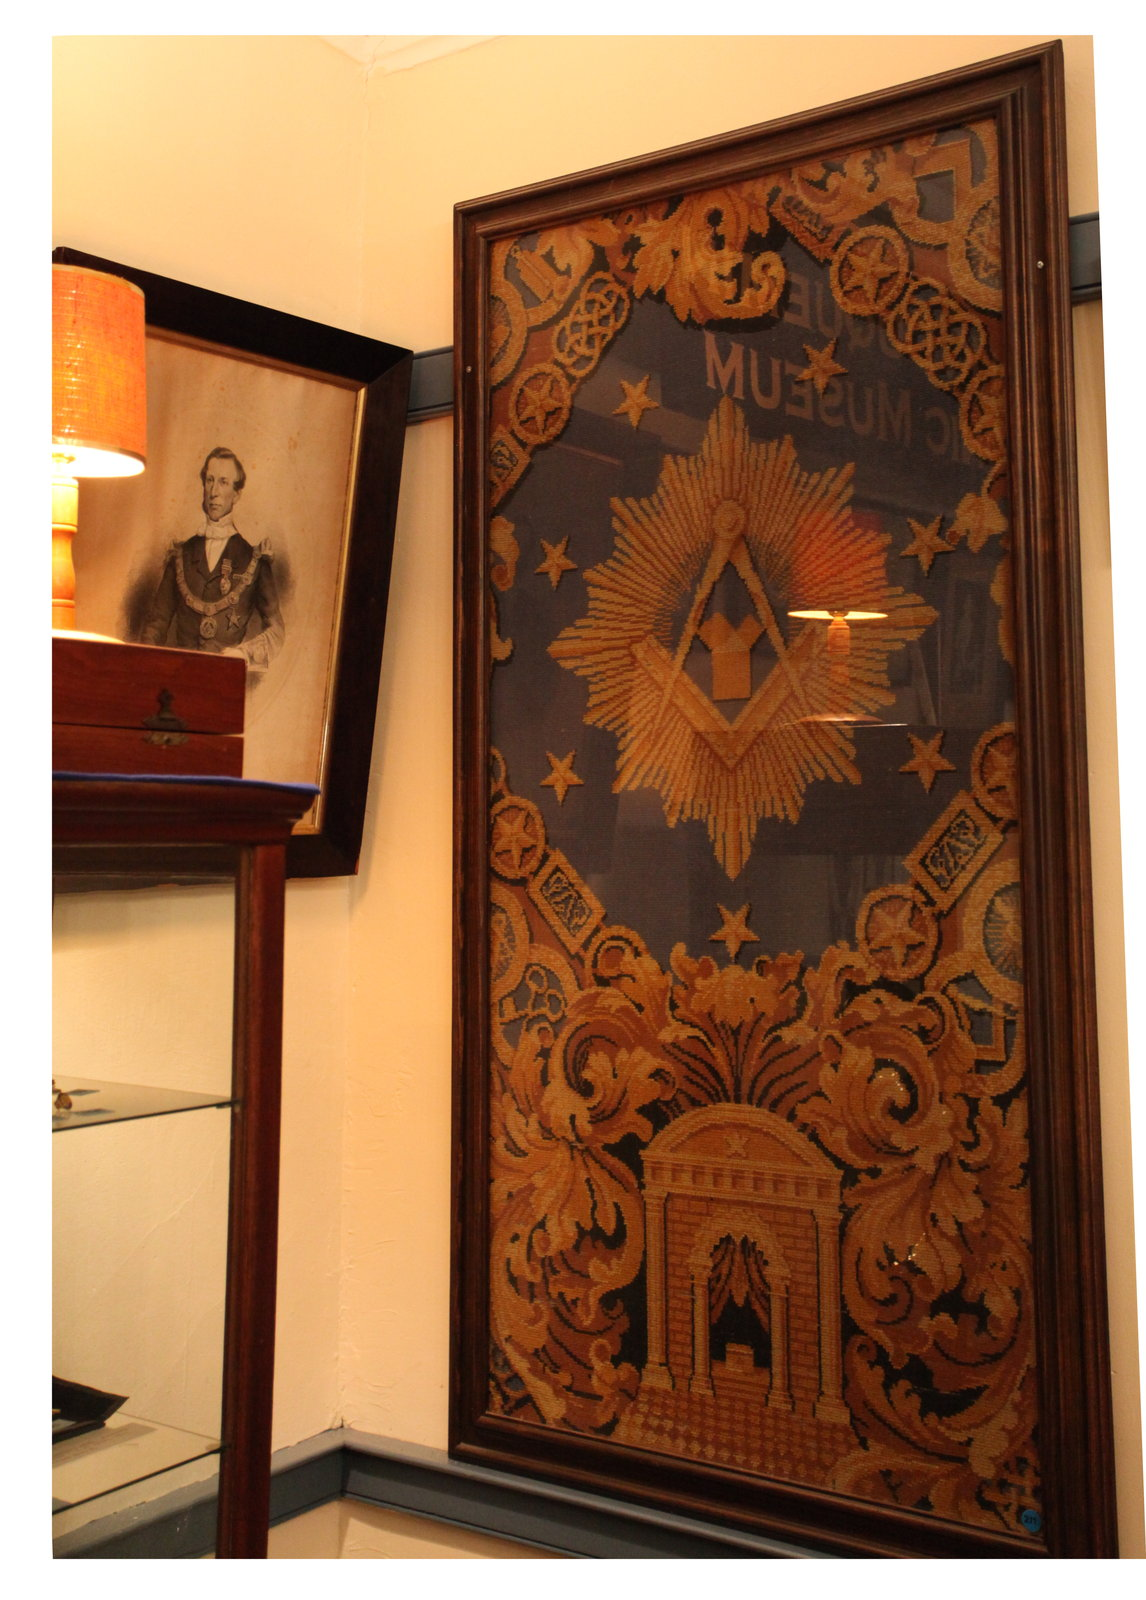 Piece of the Lodge Room carpet, 1911